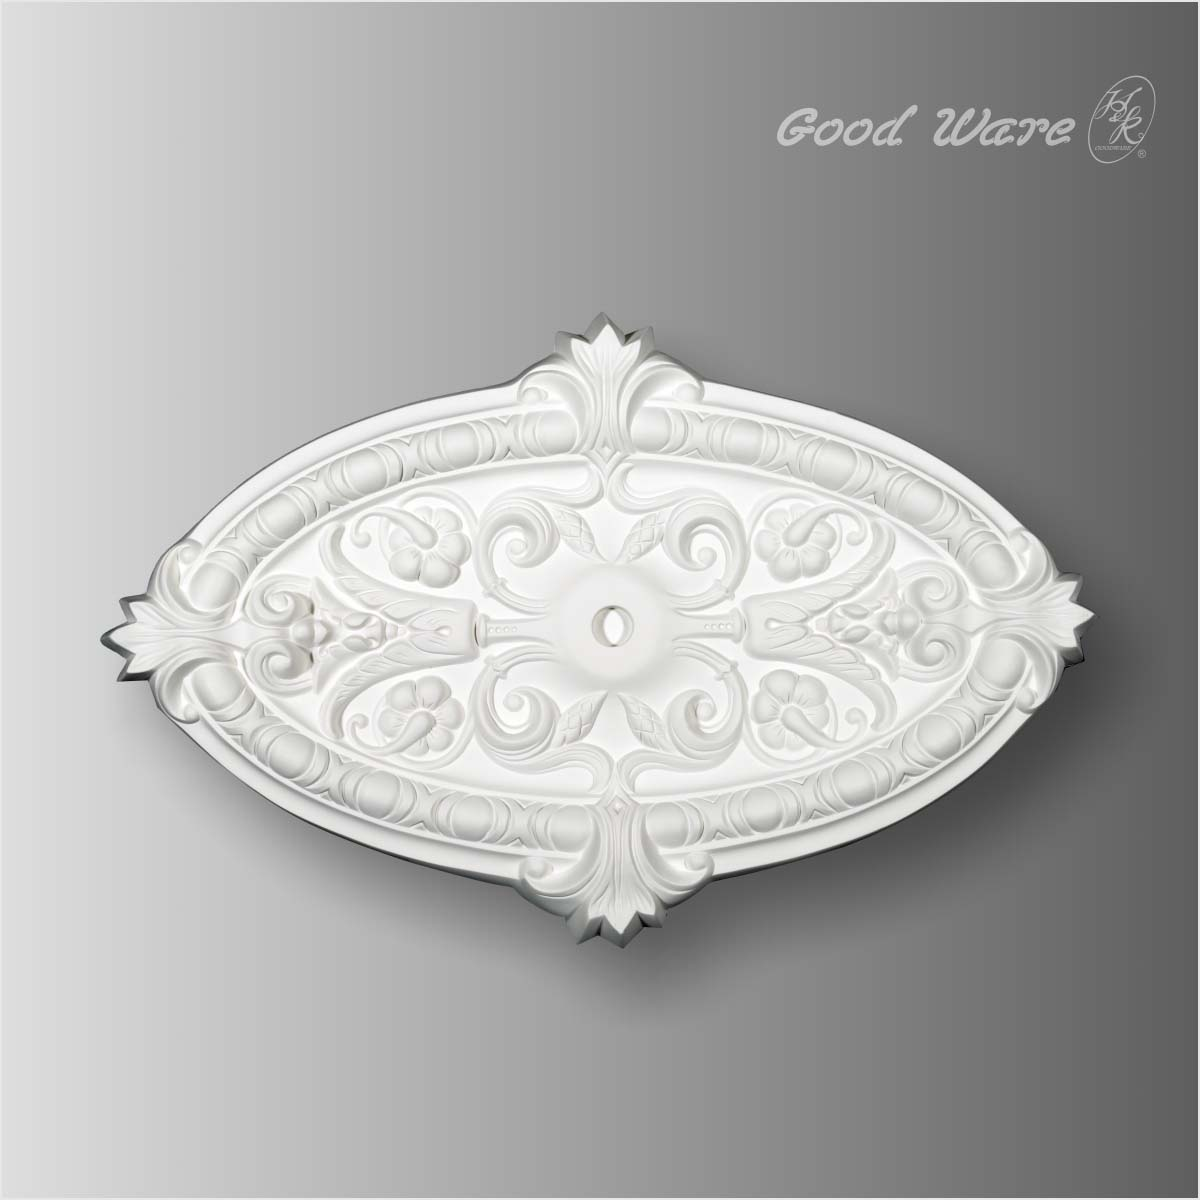 Polyurethane oval ceiling medallion for sale